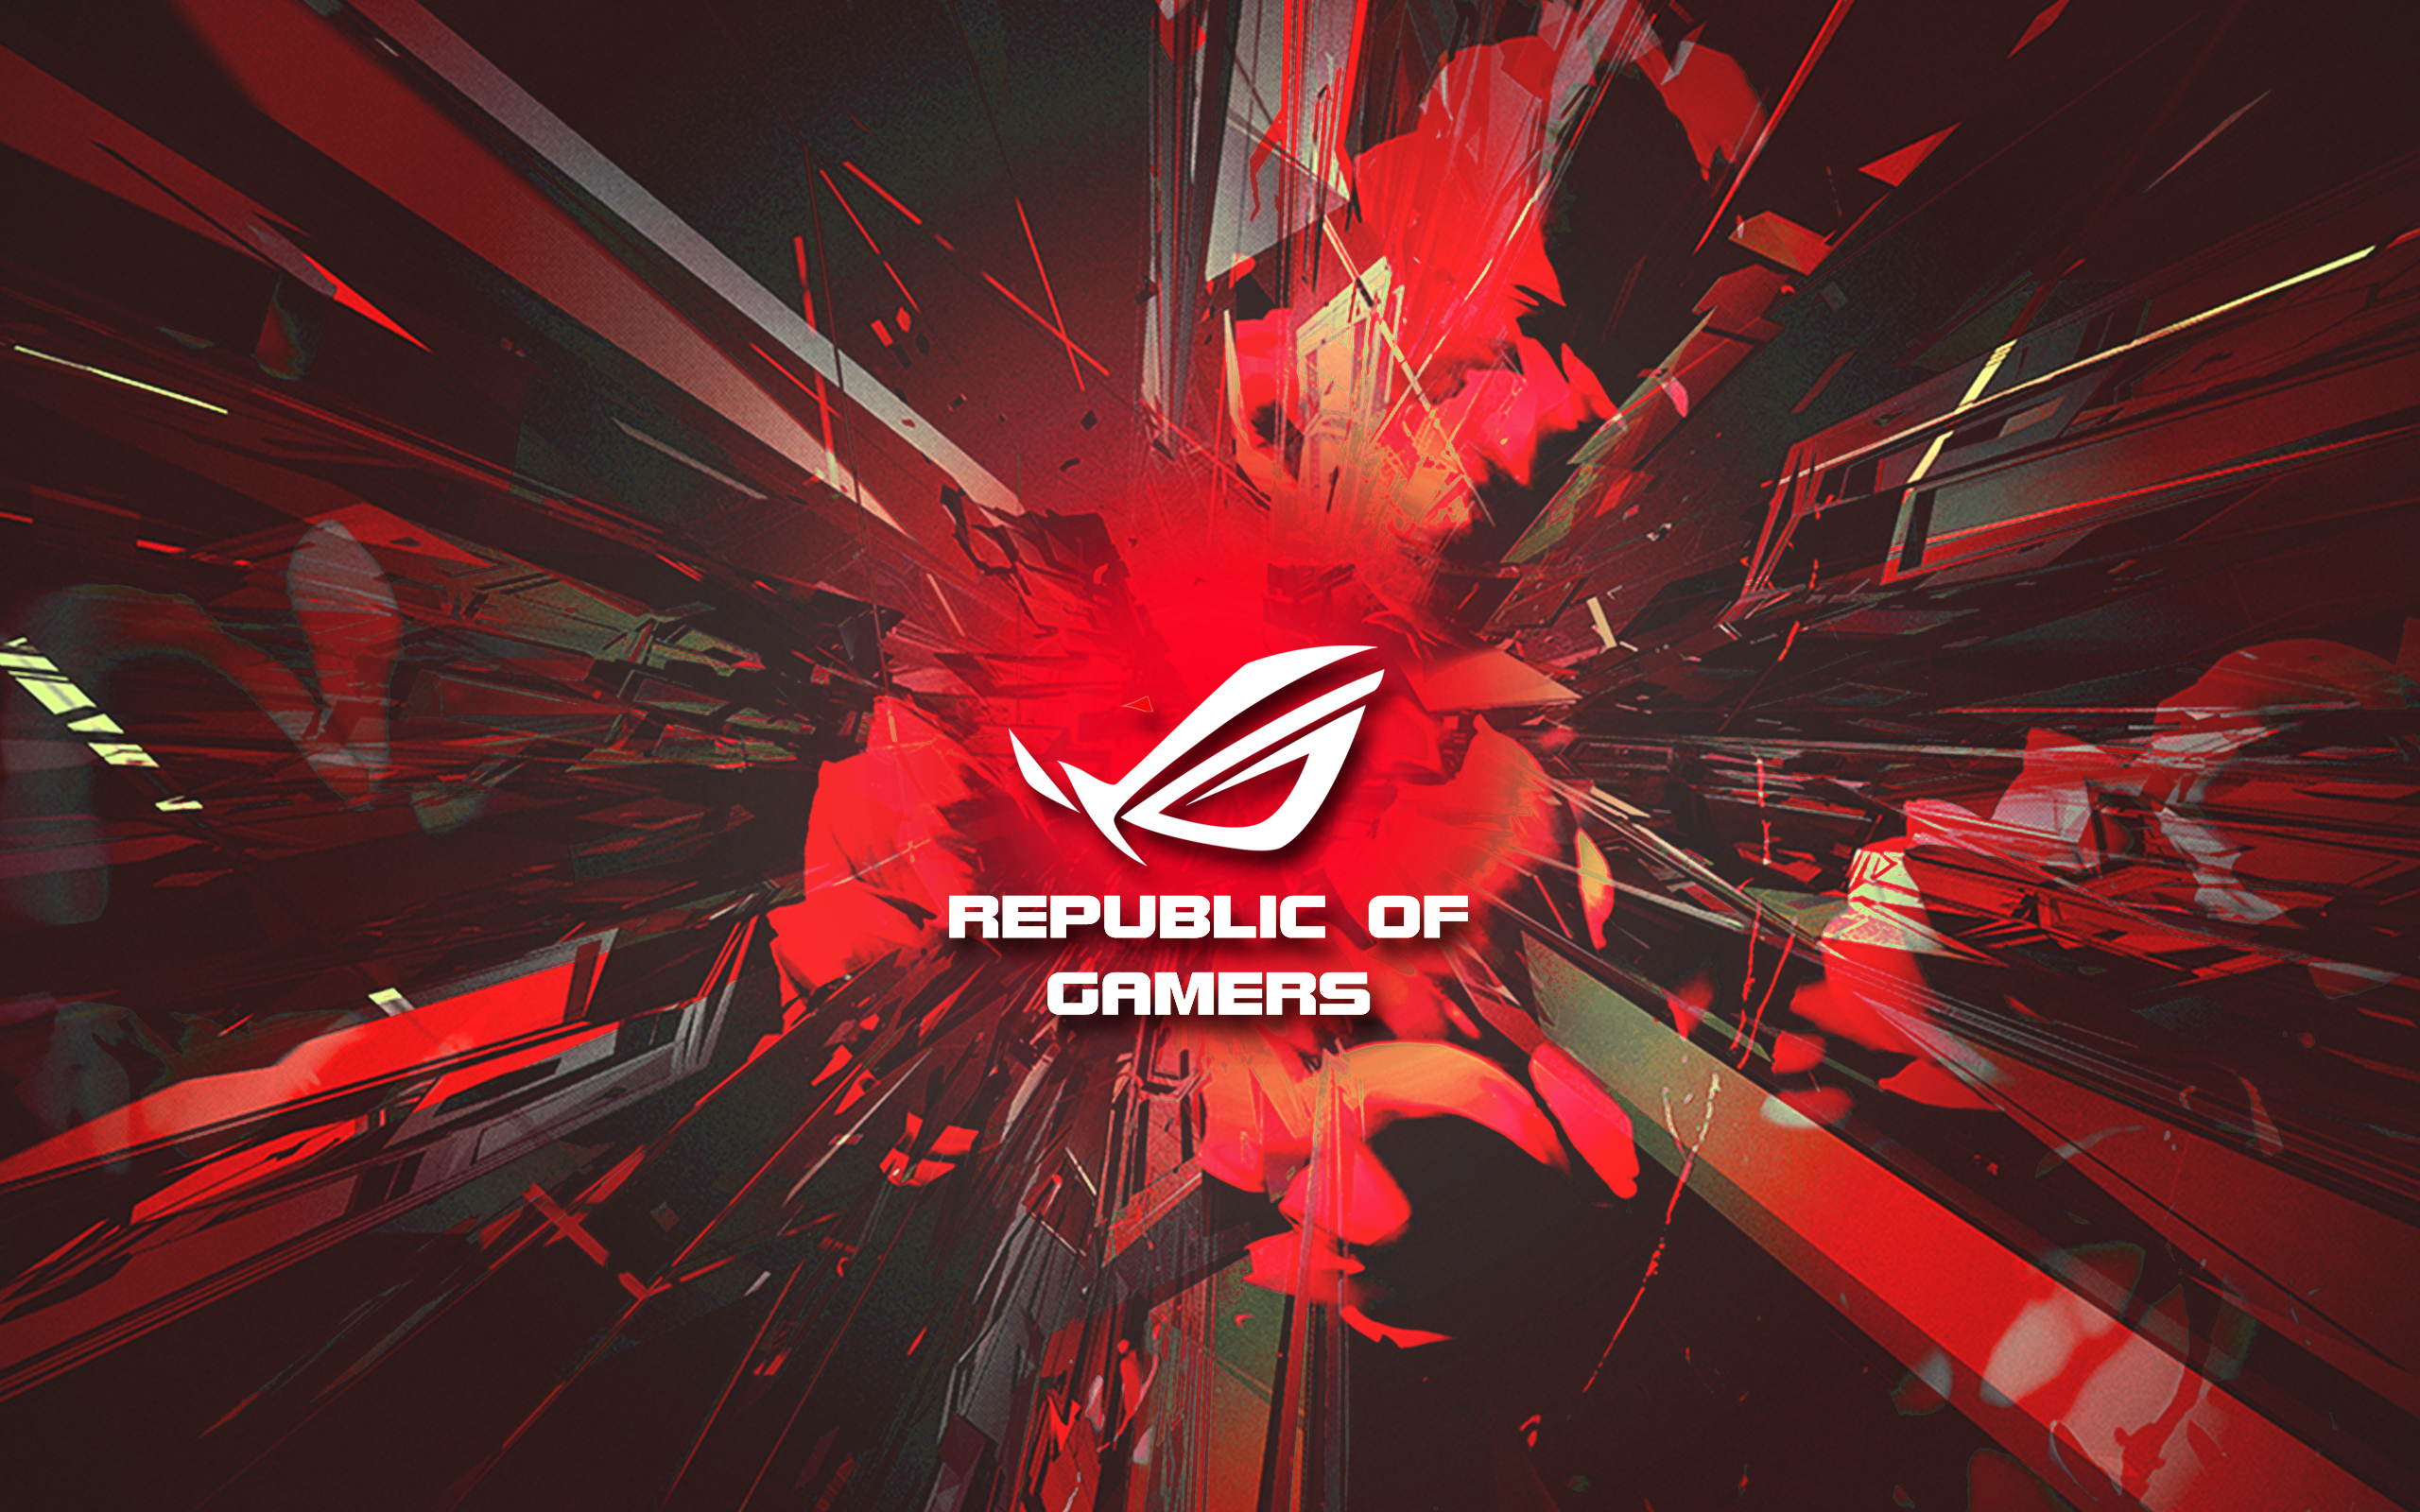 2013 ROG Wallpaper Competition: Vote For Your Favorite